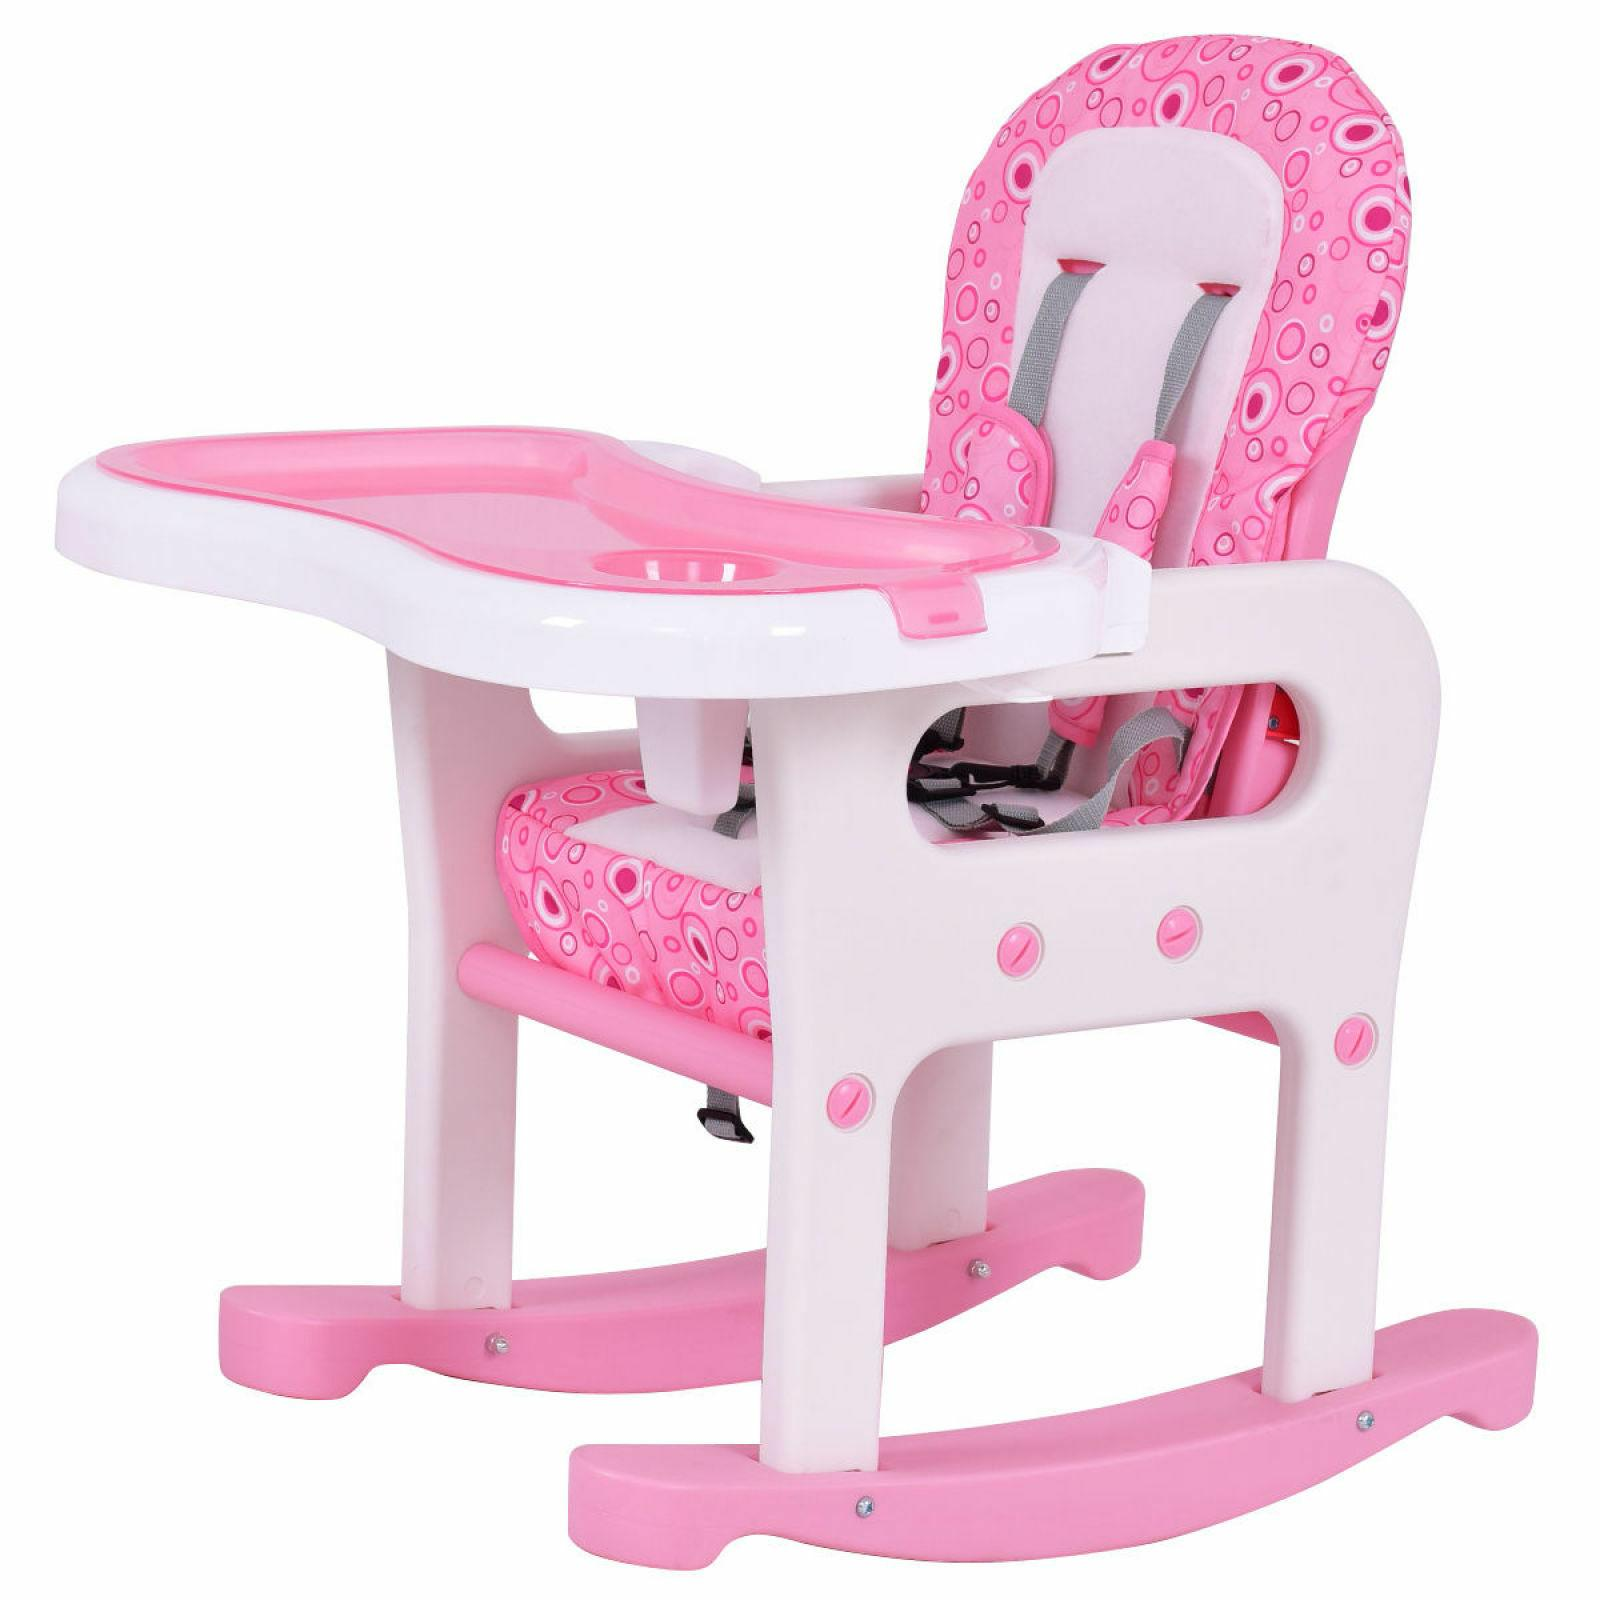 Costway 1 Baby Chair Play Table Toddler Pink